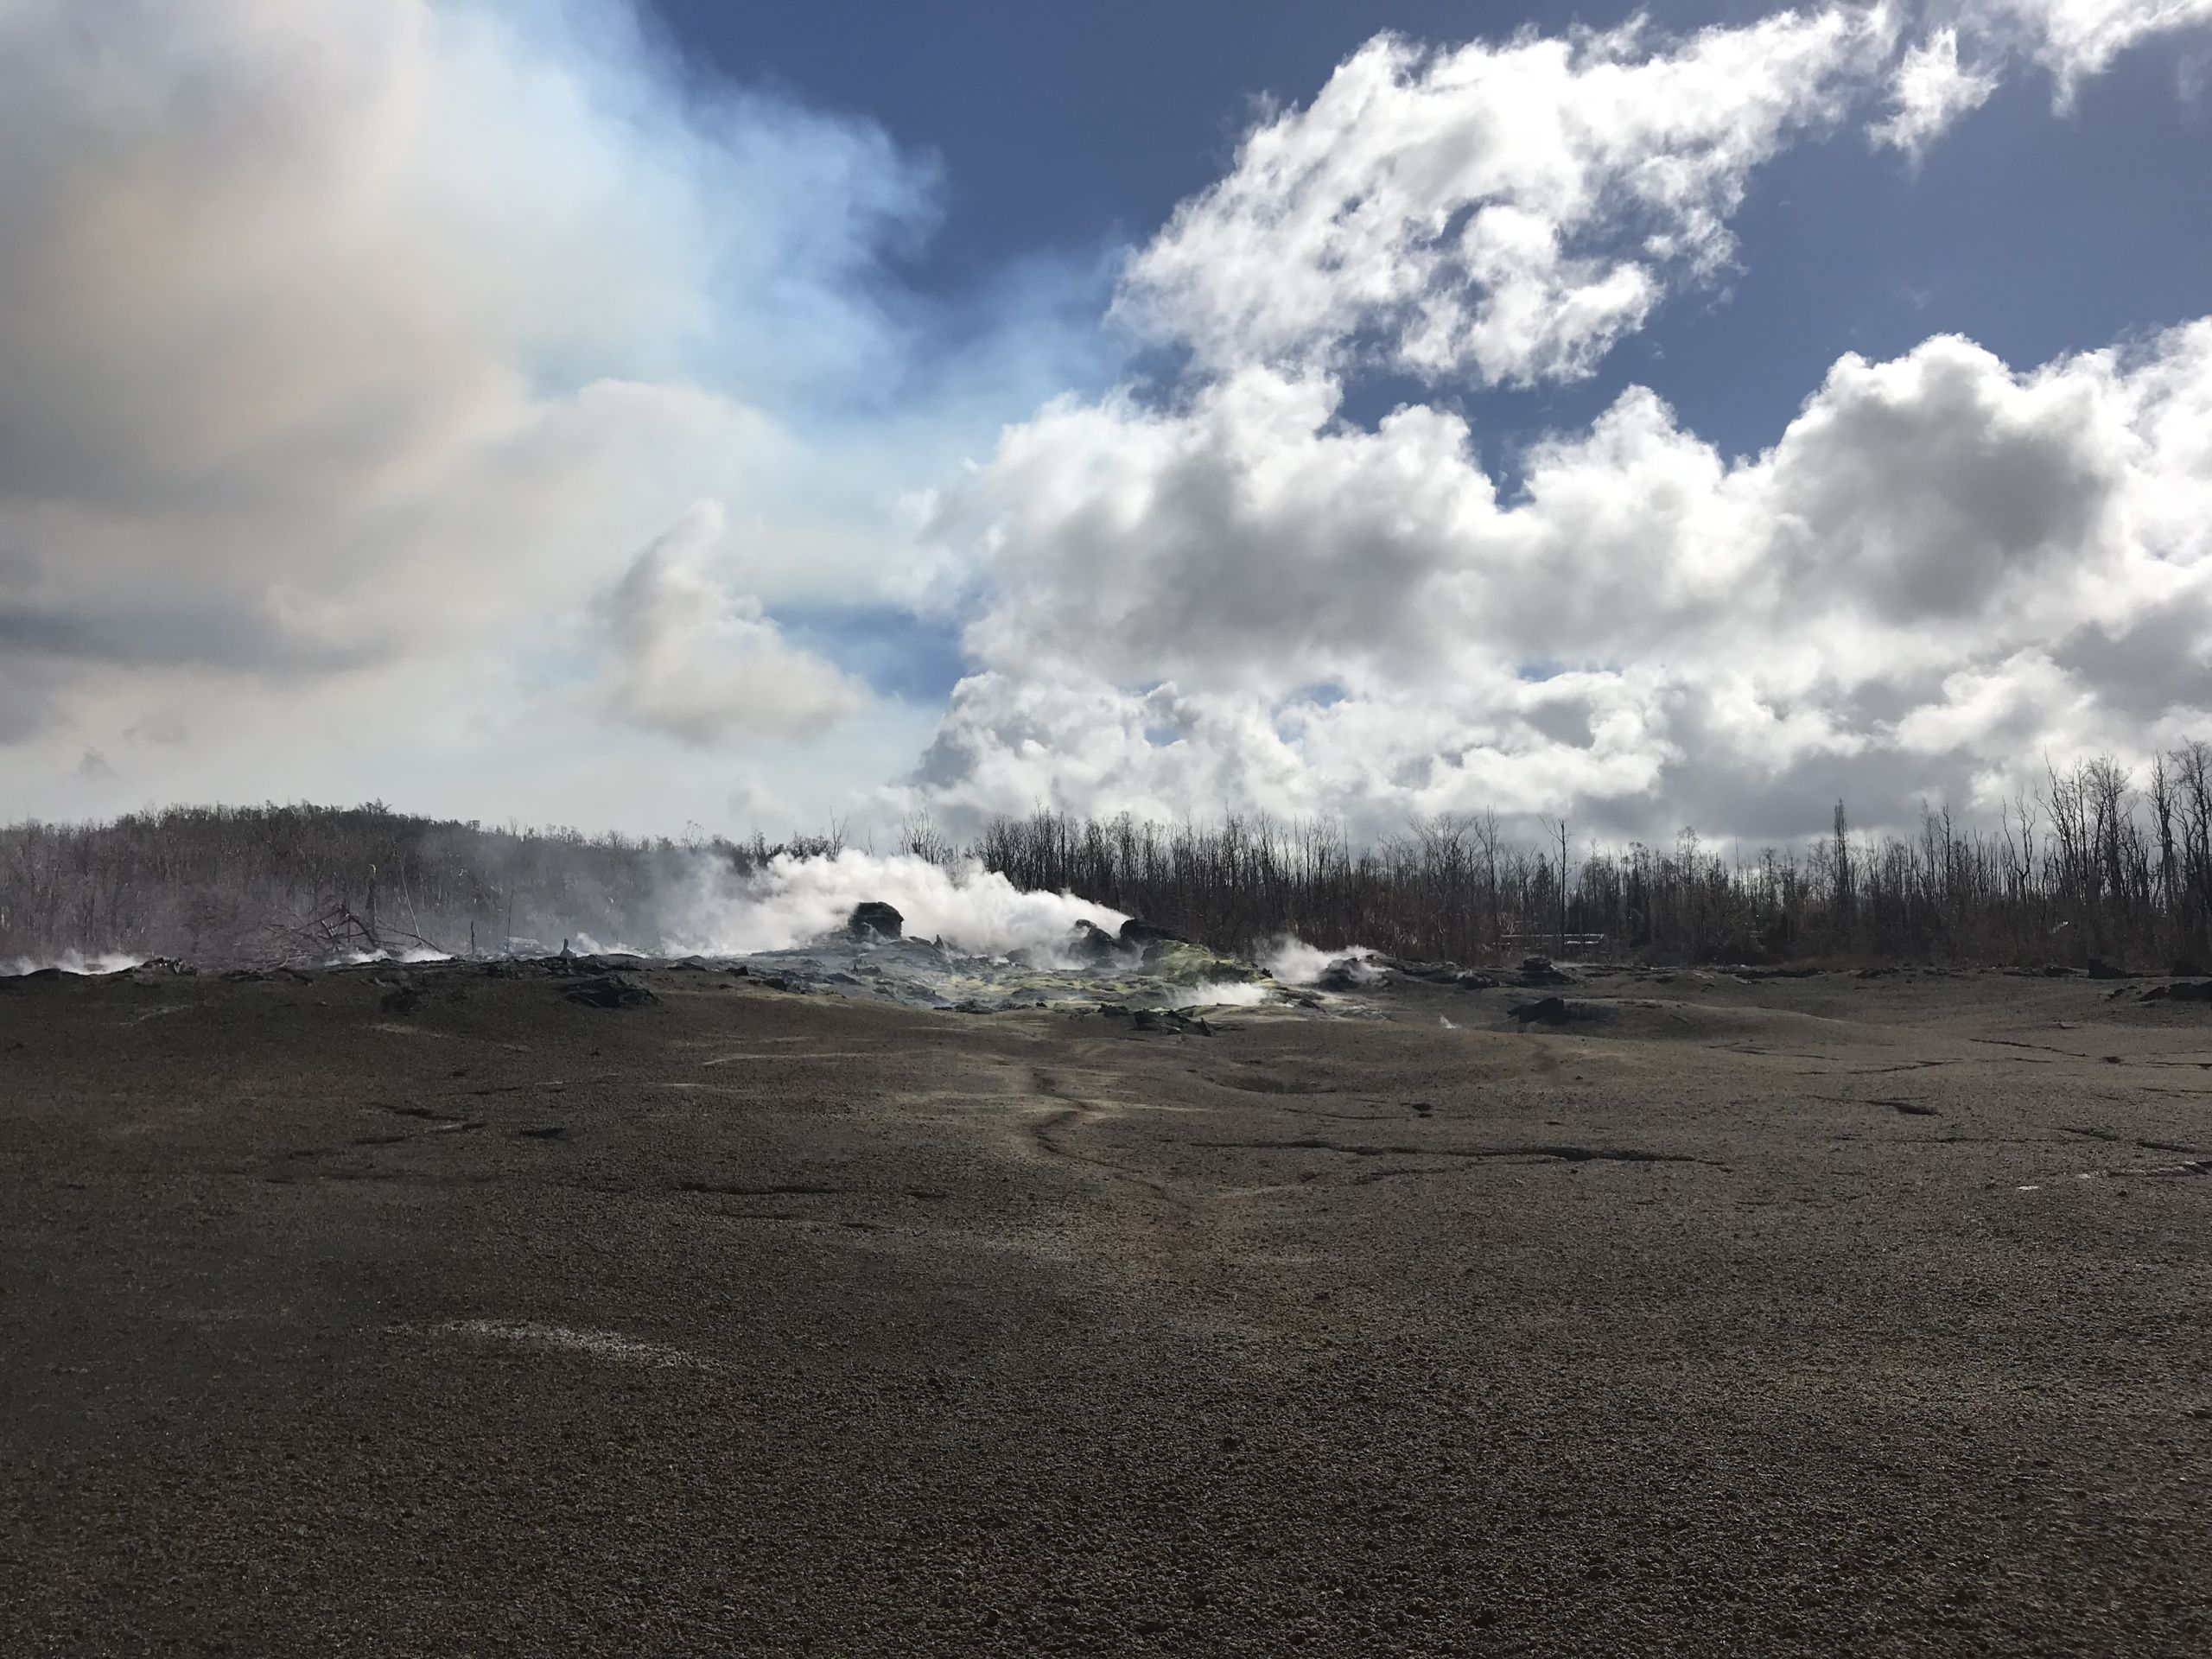 Gases belch out of fumarole vents near the 2018 eruption site.